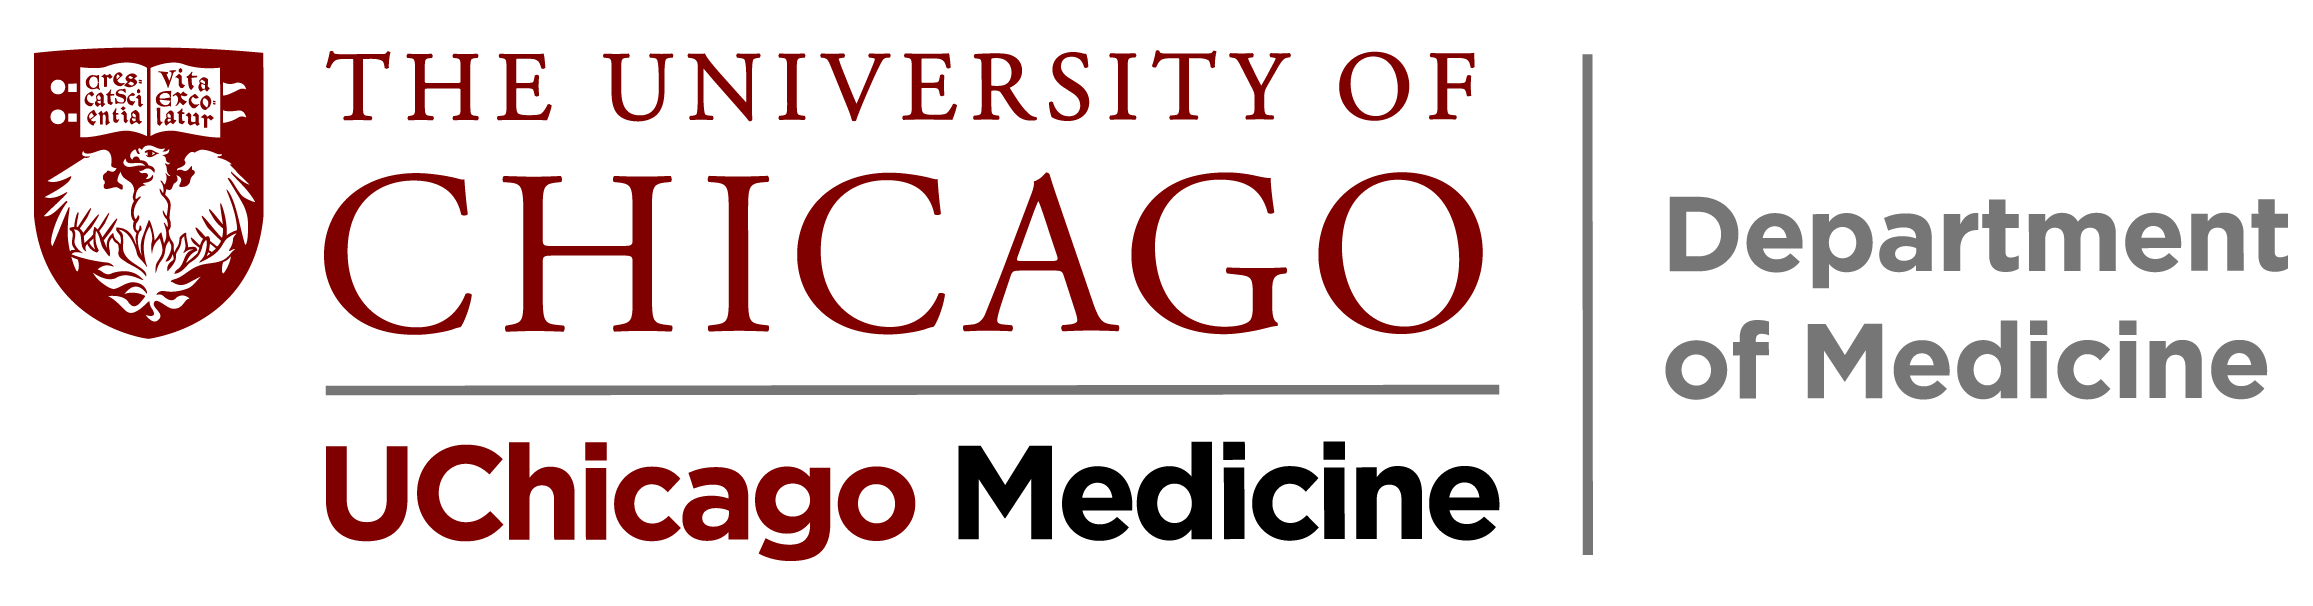 ACGME Fellowship – University of Chicago – Department of